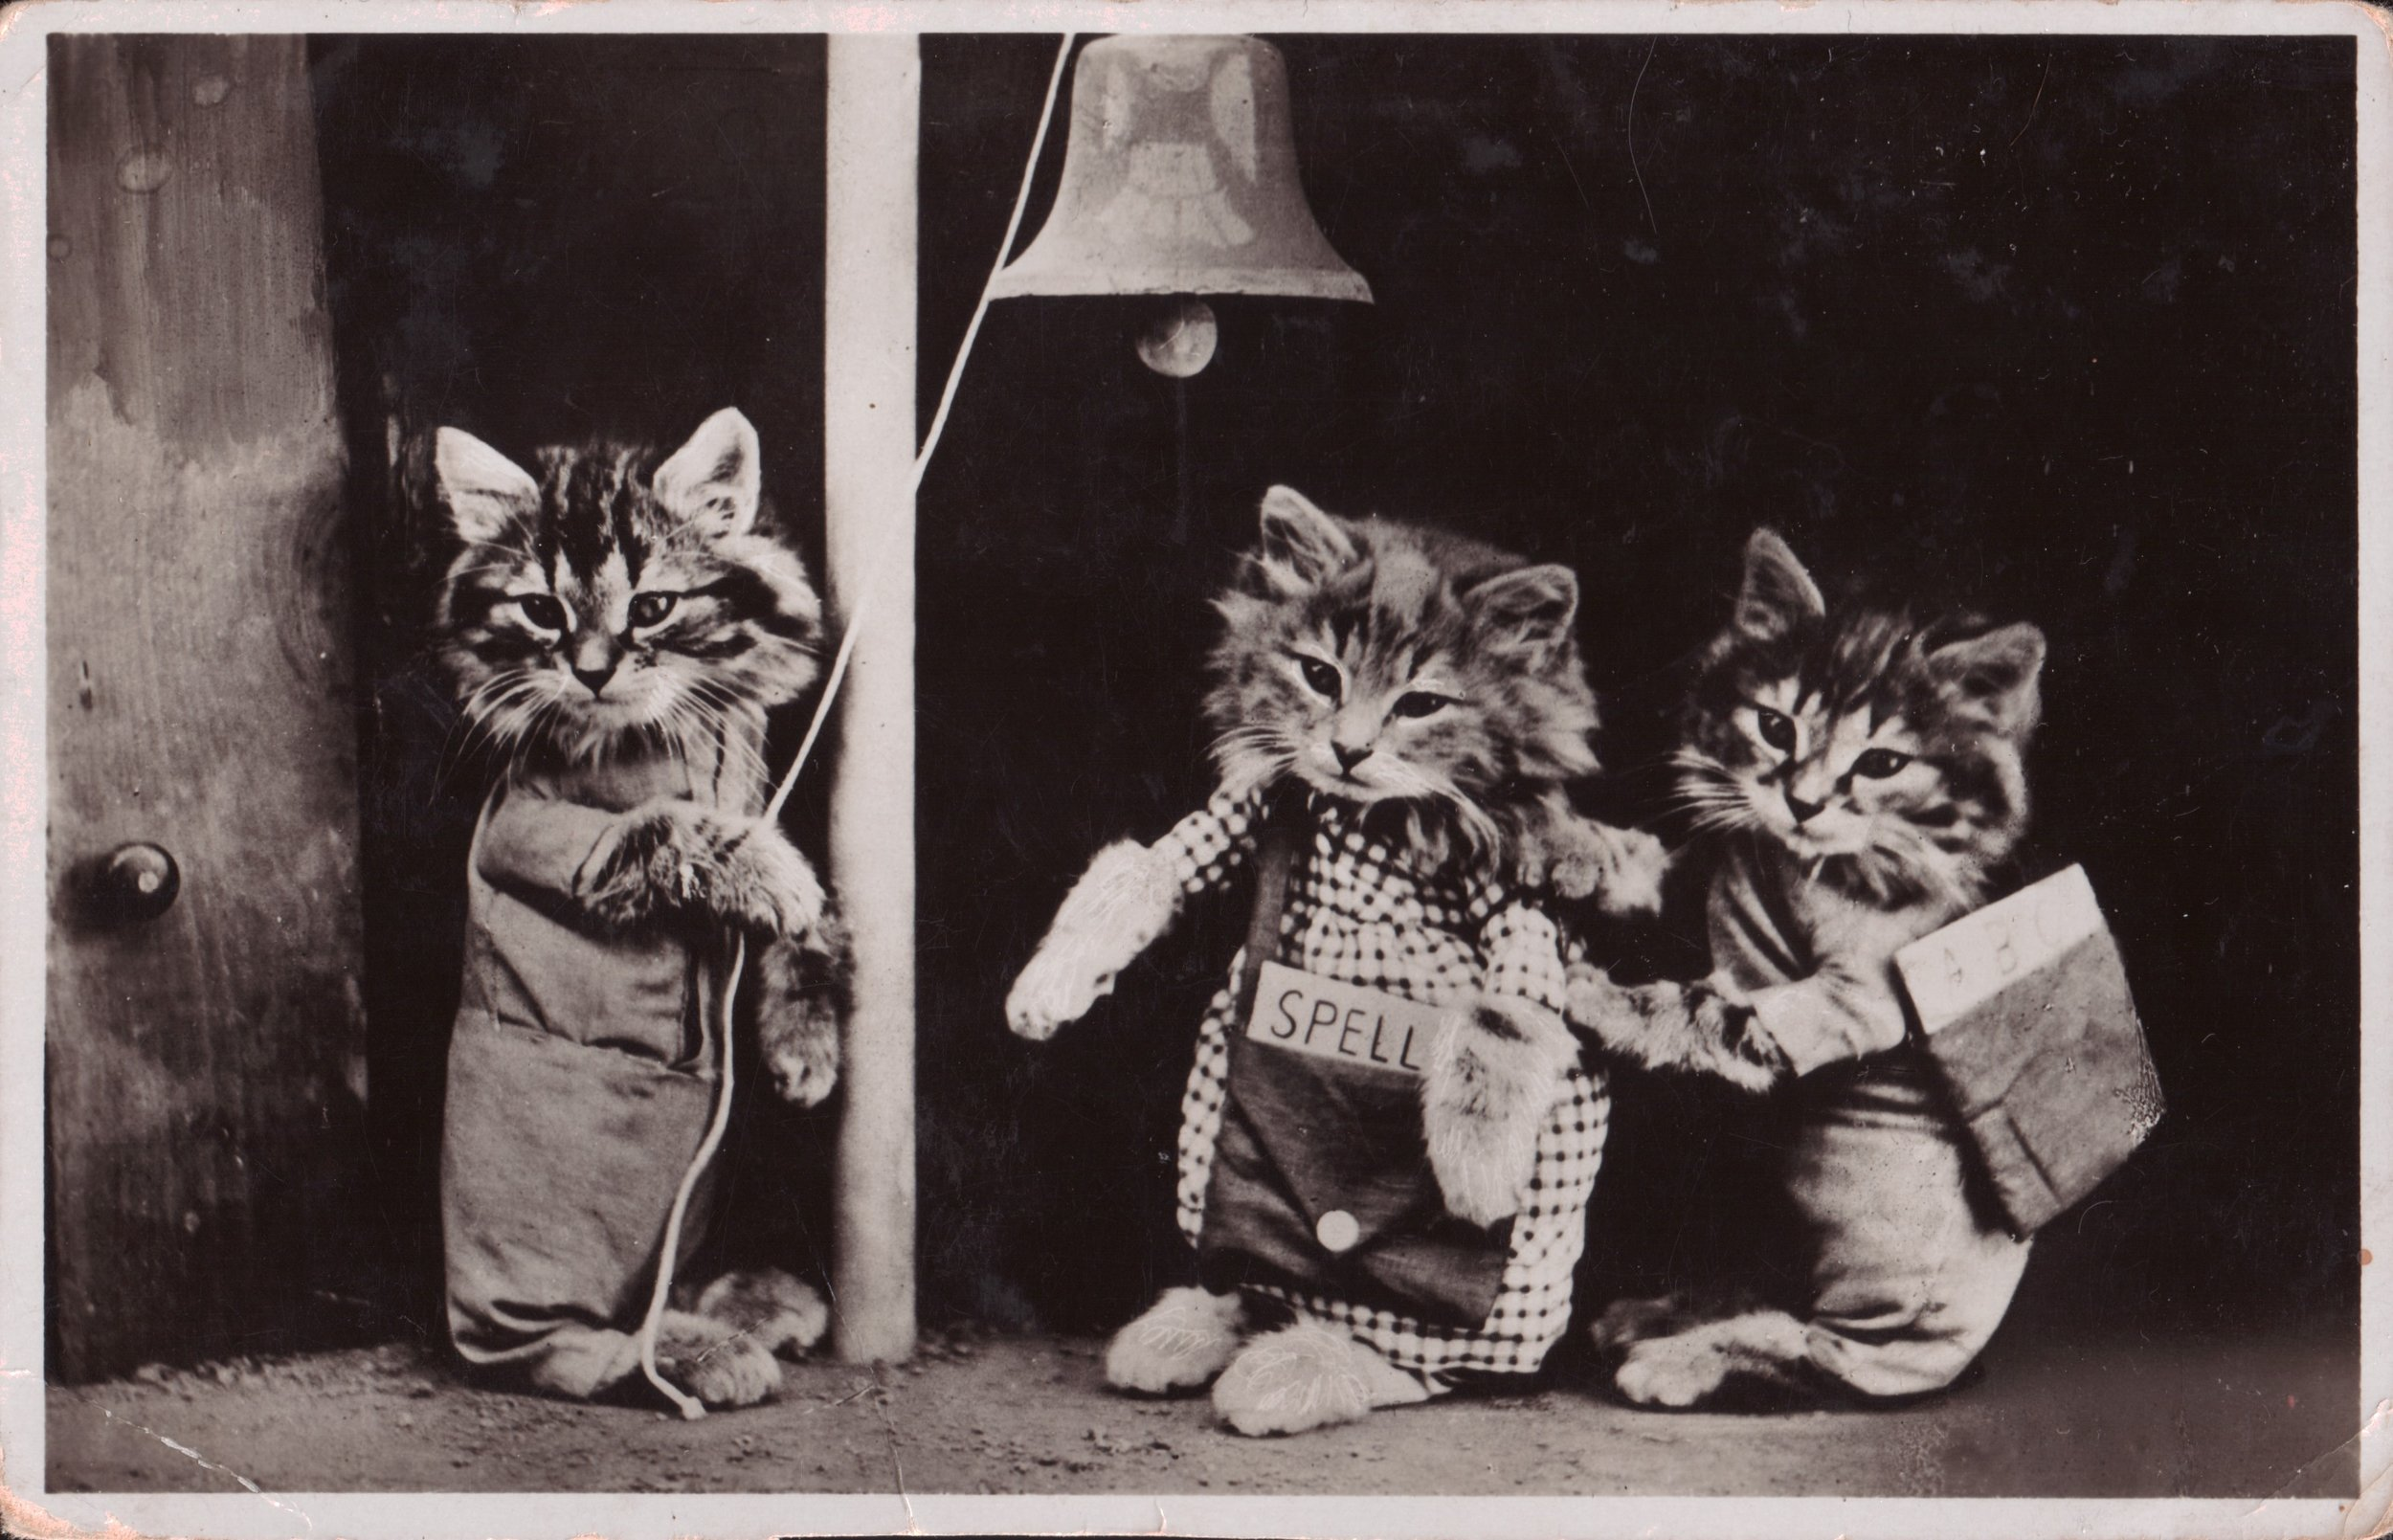 THE DRESSED CATS PROJECT